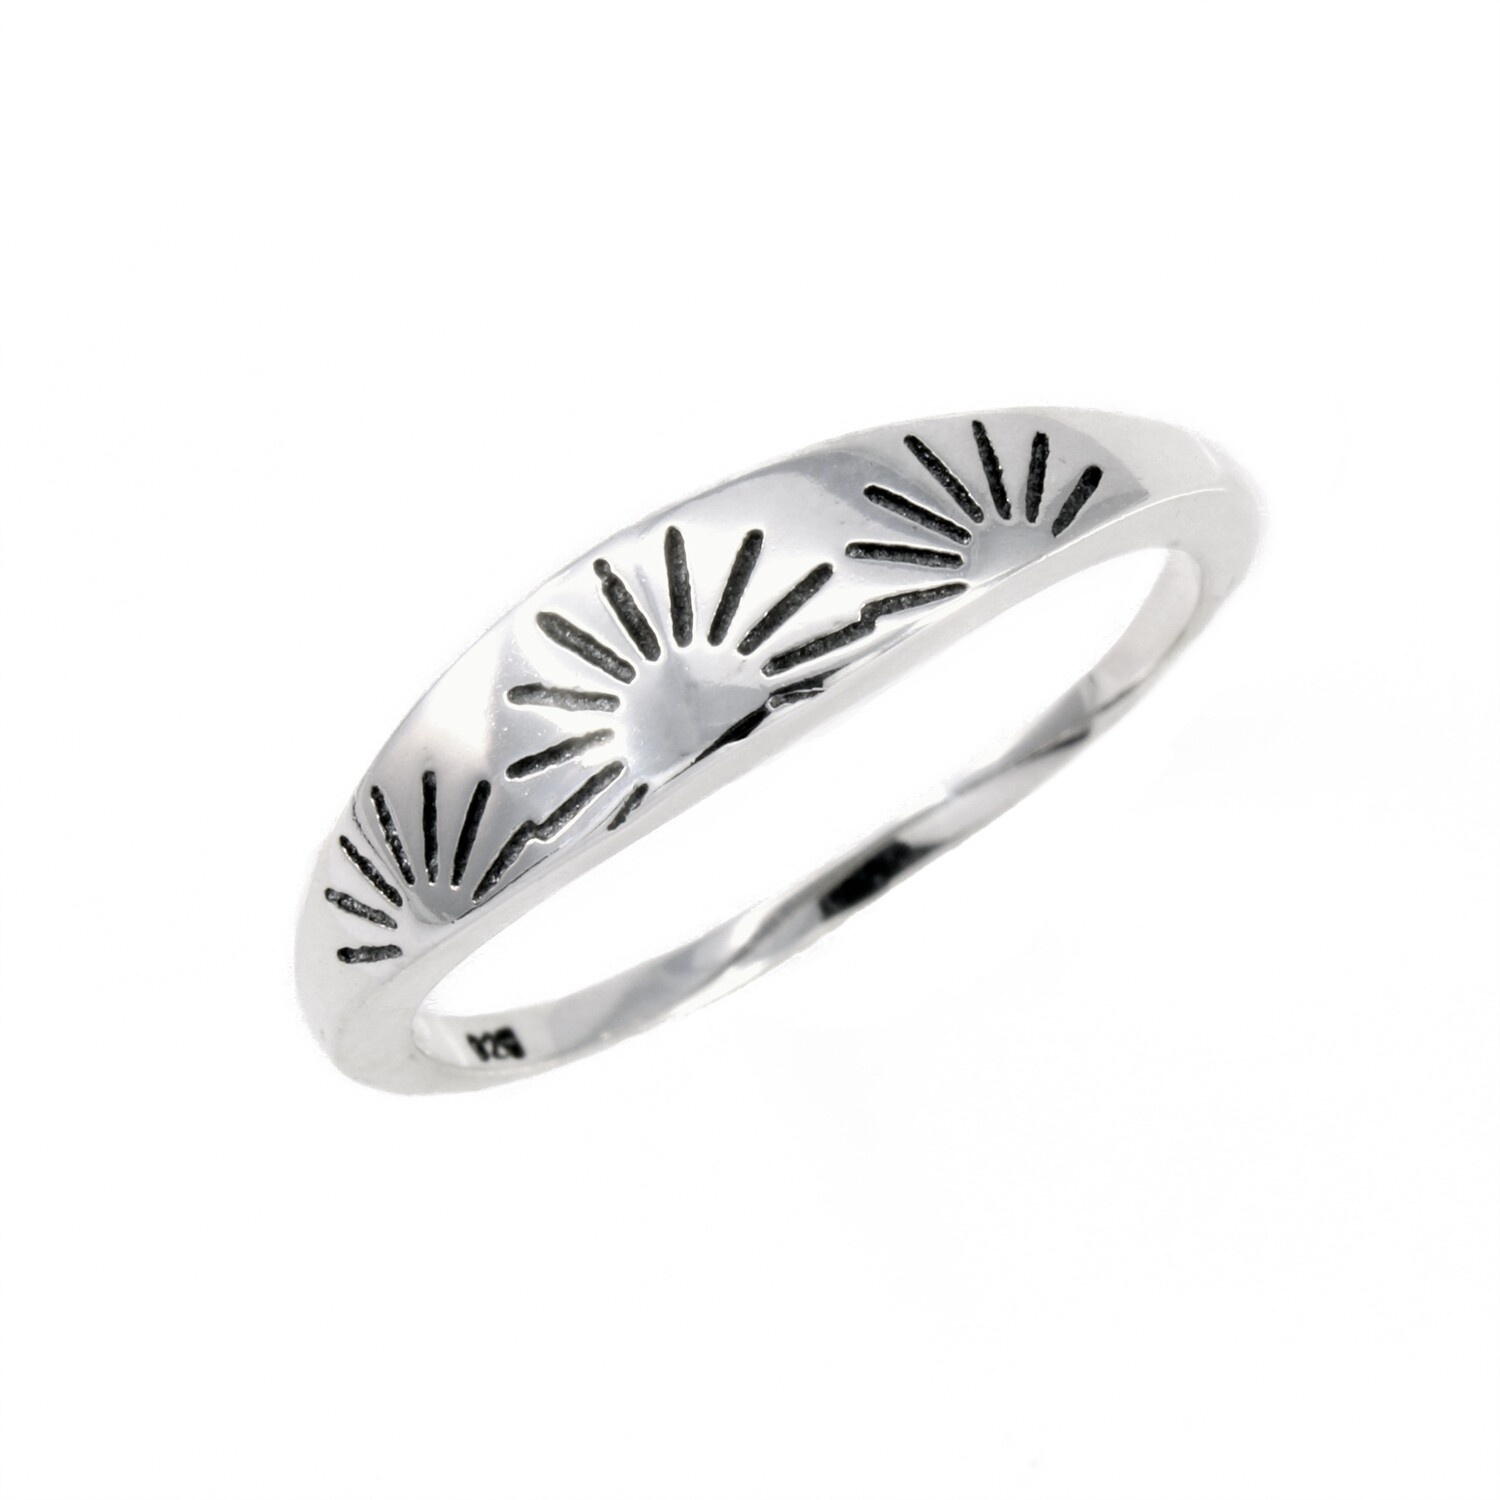 RP3680 Sterling Silver Sunrise Band